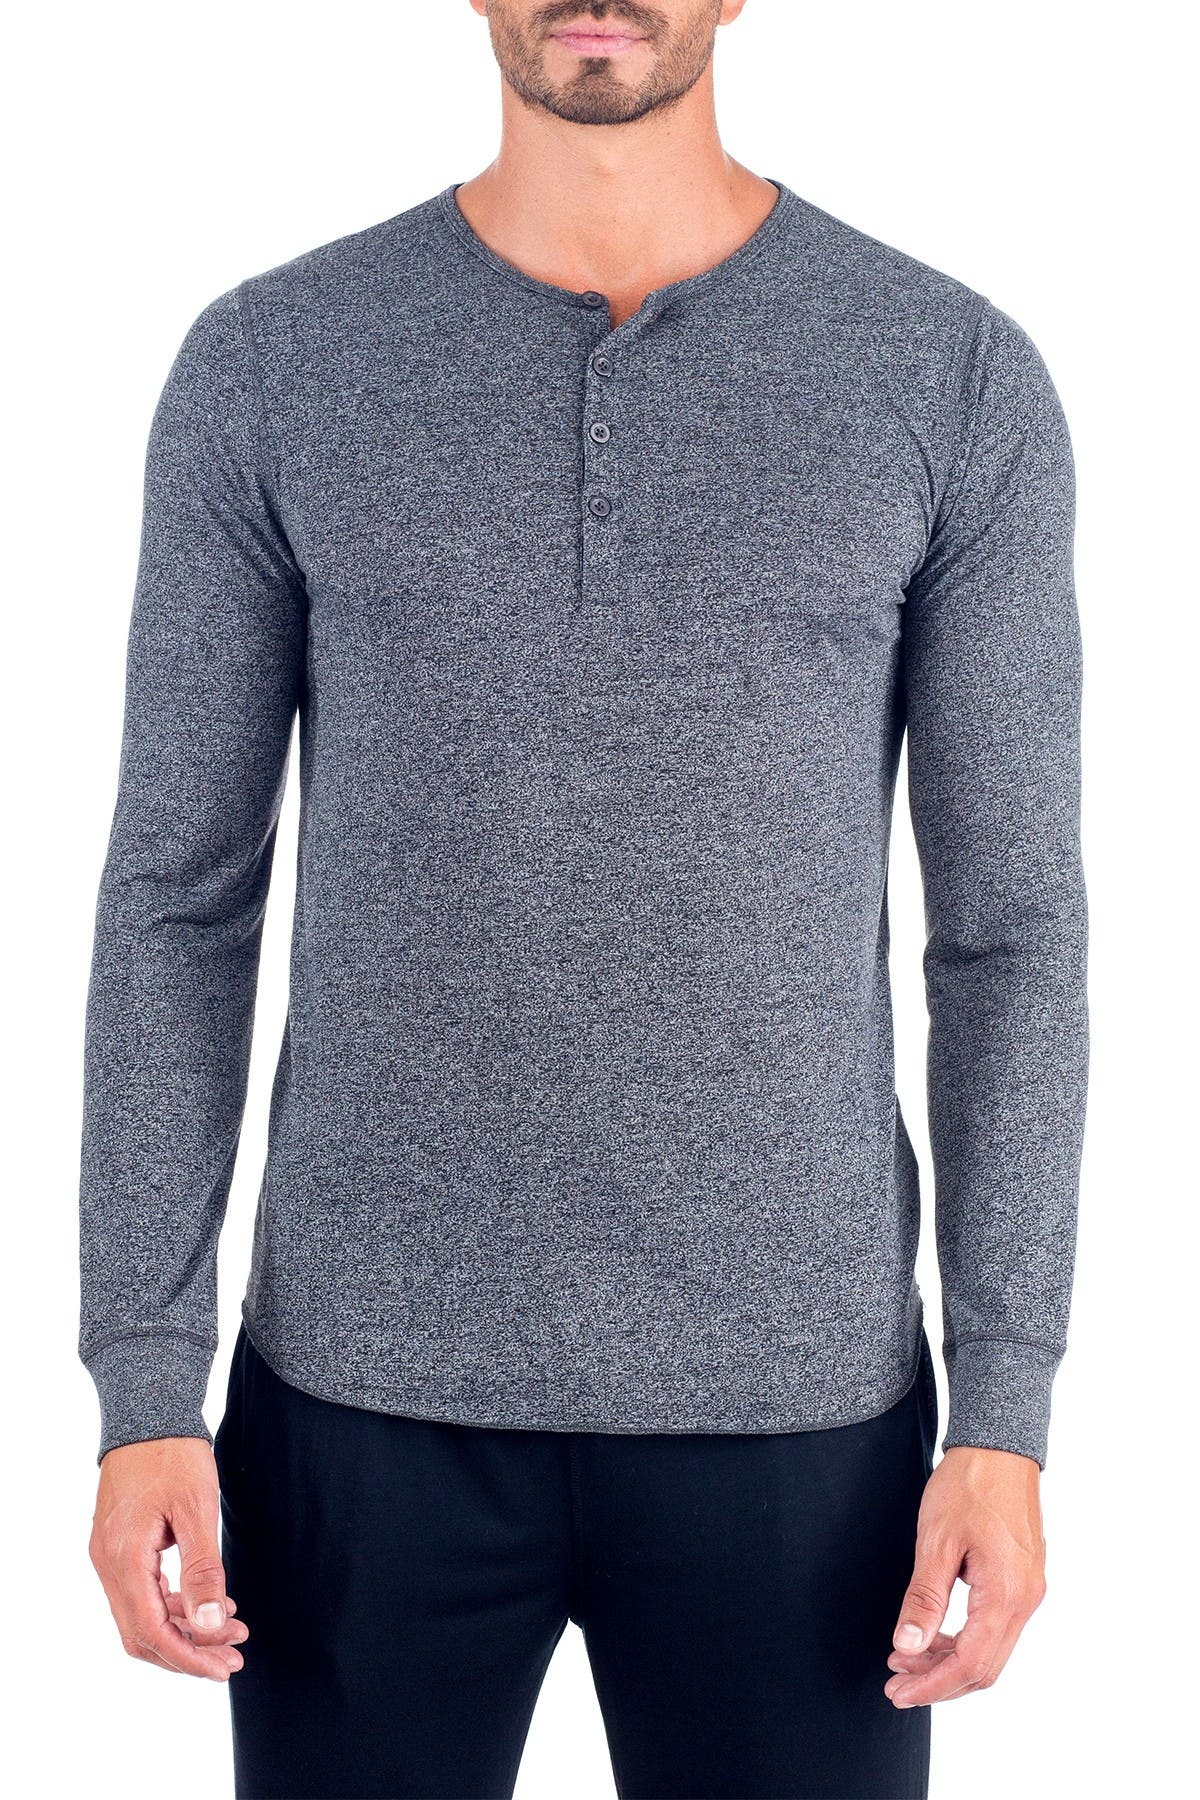 Image of Unsimply Stitched Super Soft Long Sleeve Lounge Henley